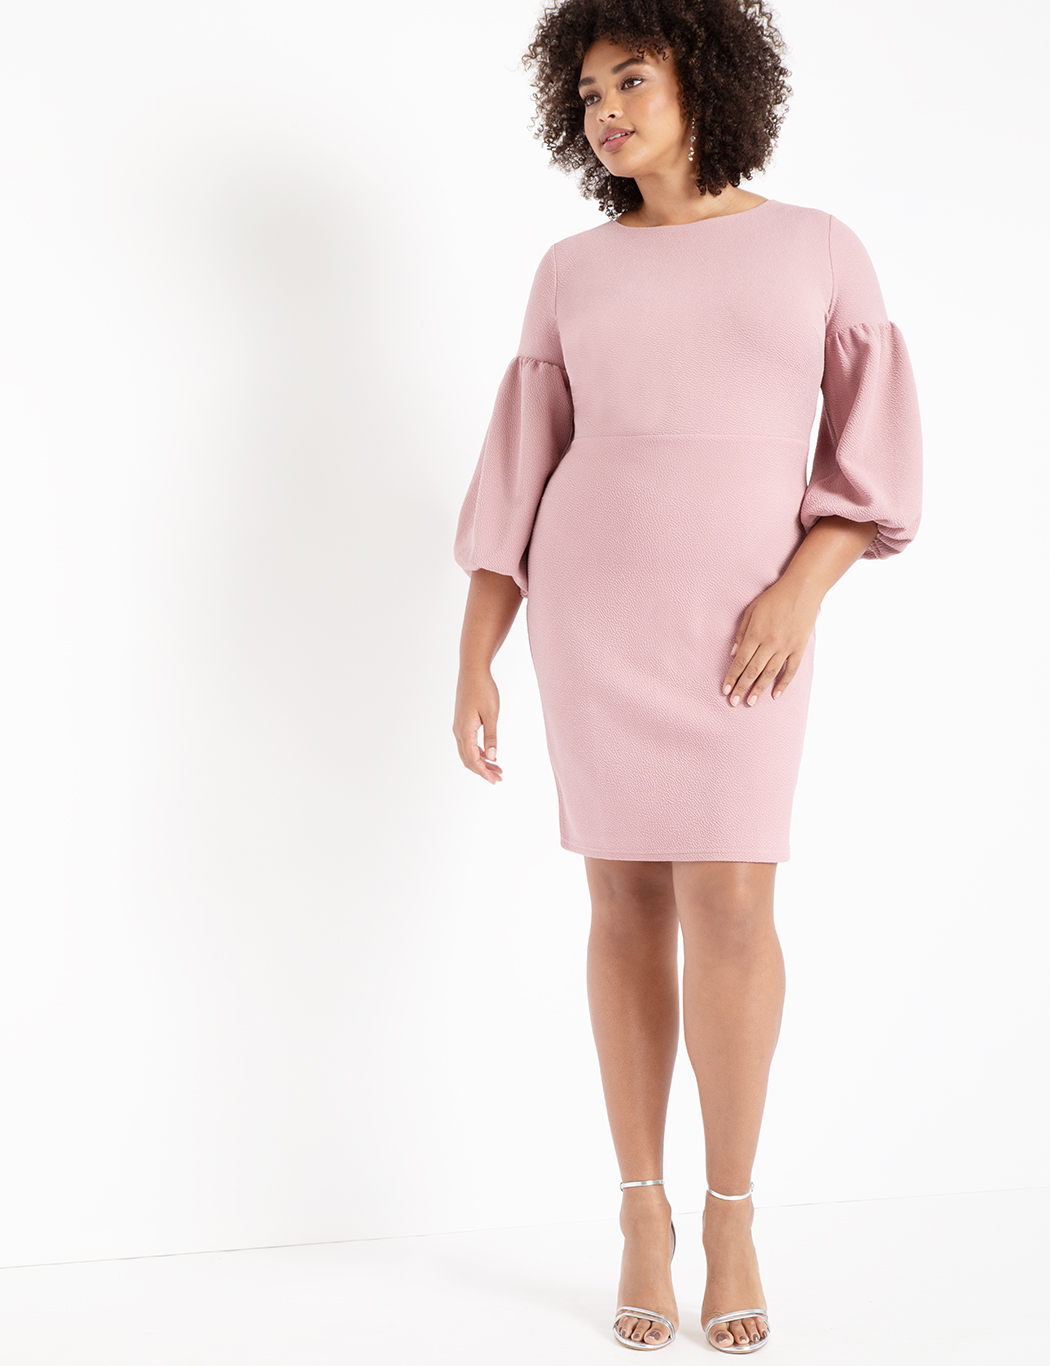 ae45cbe34a Puff Sleeve Bodycon Dress | Women's Plus Size Dresses | ELOQUII